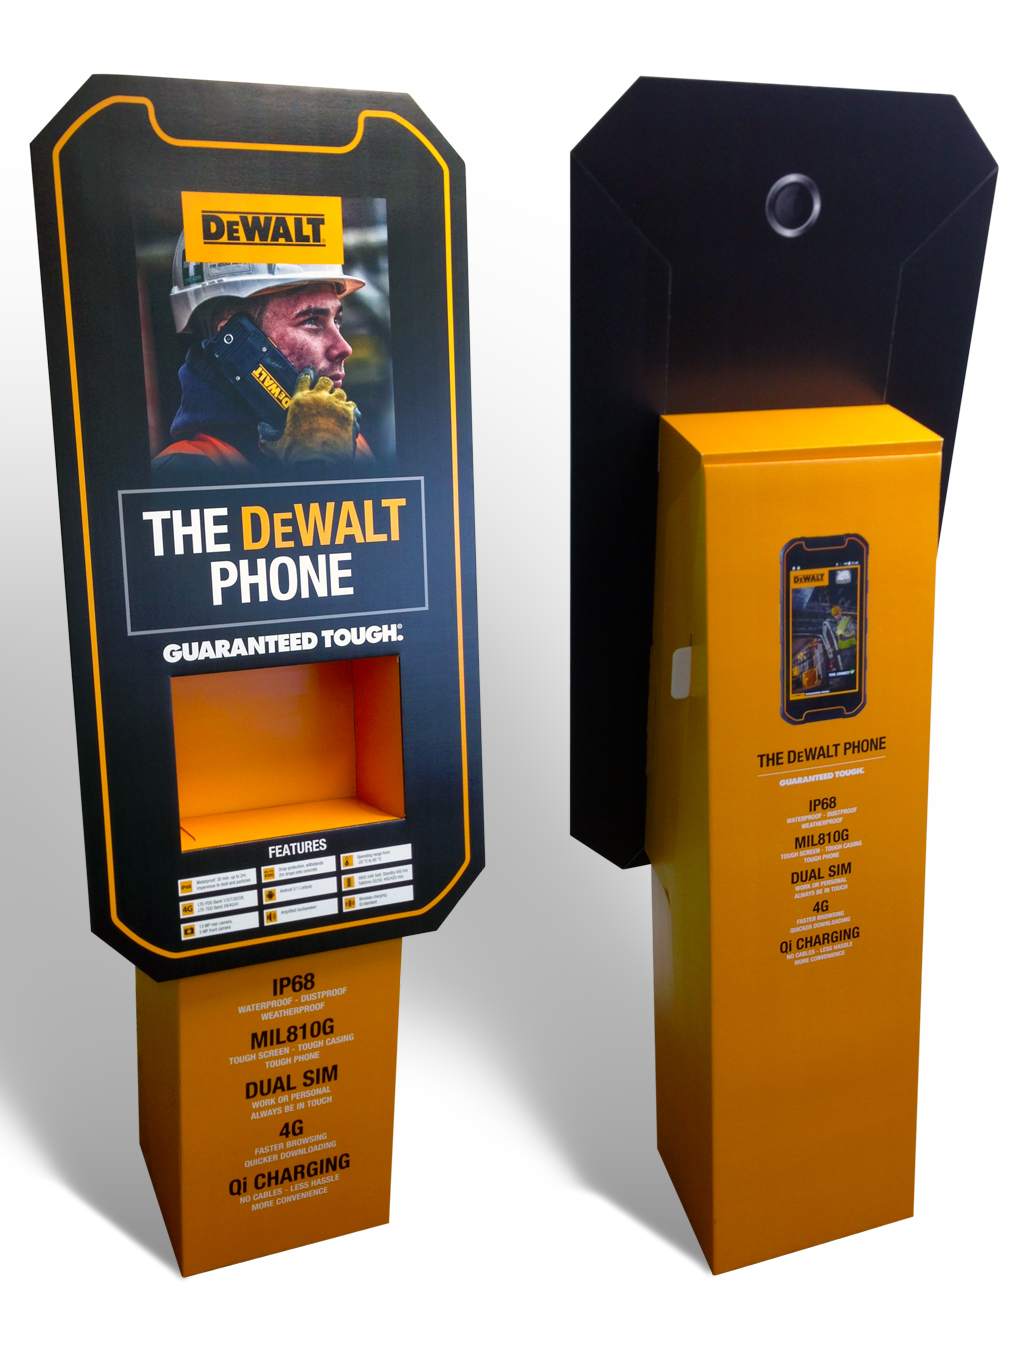 dewalt phones POS